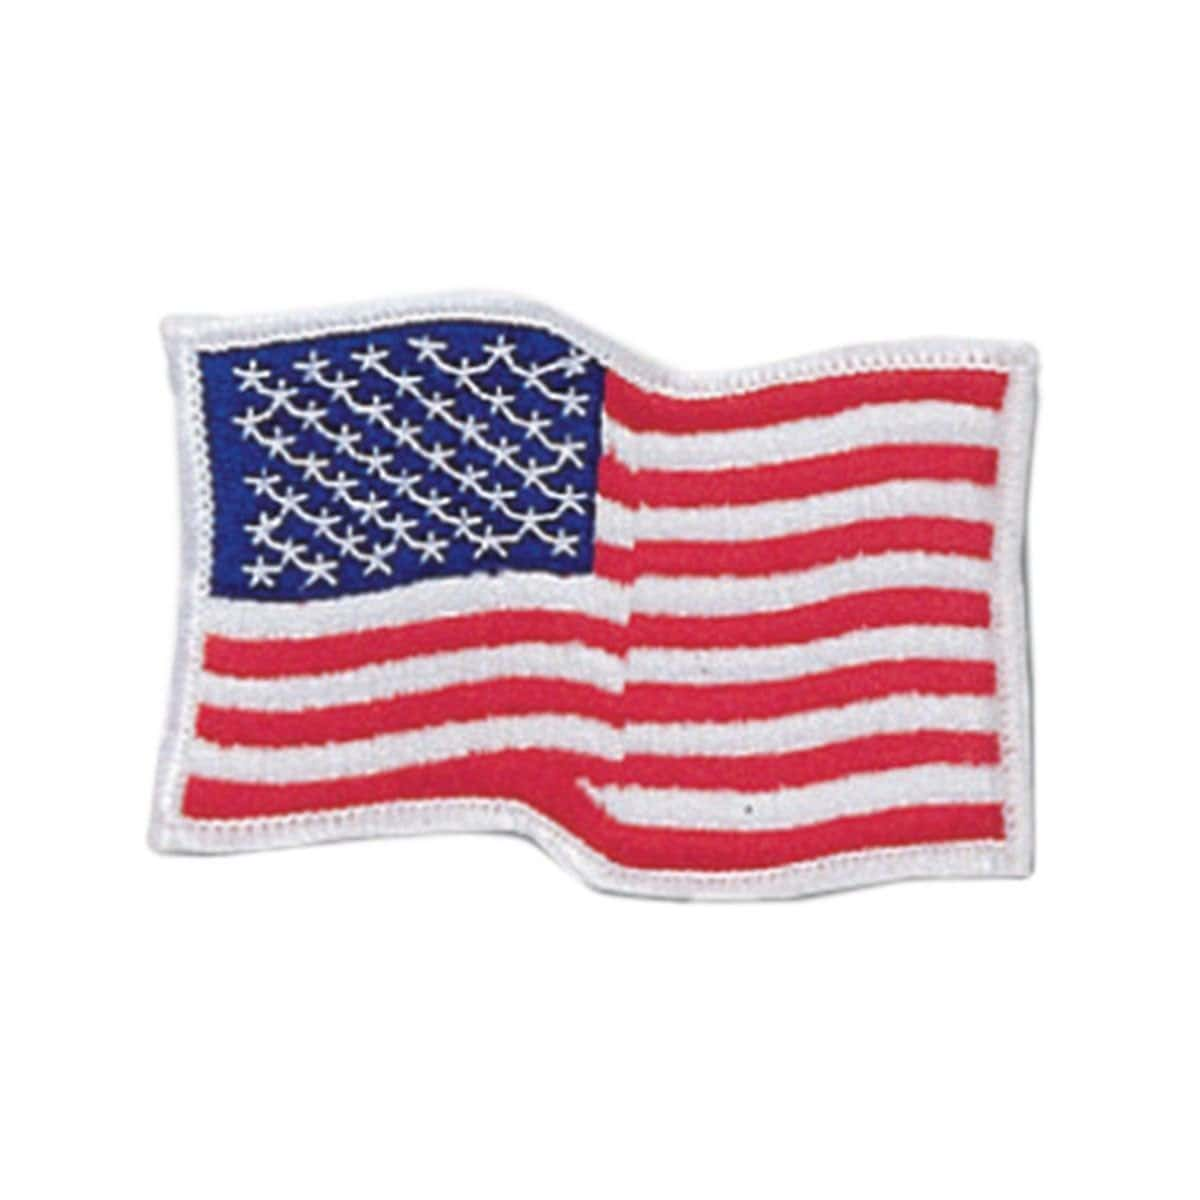 Waving American Flag Patch c0810WAM - BlackBeltShop